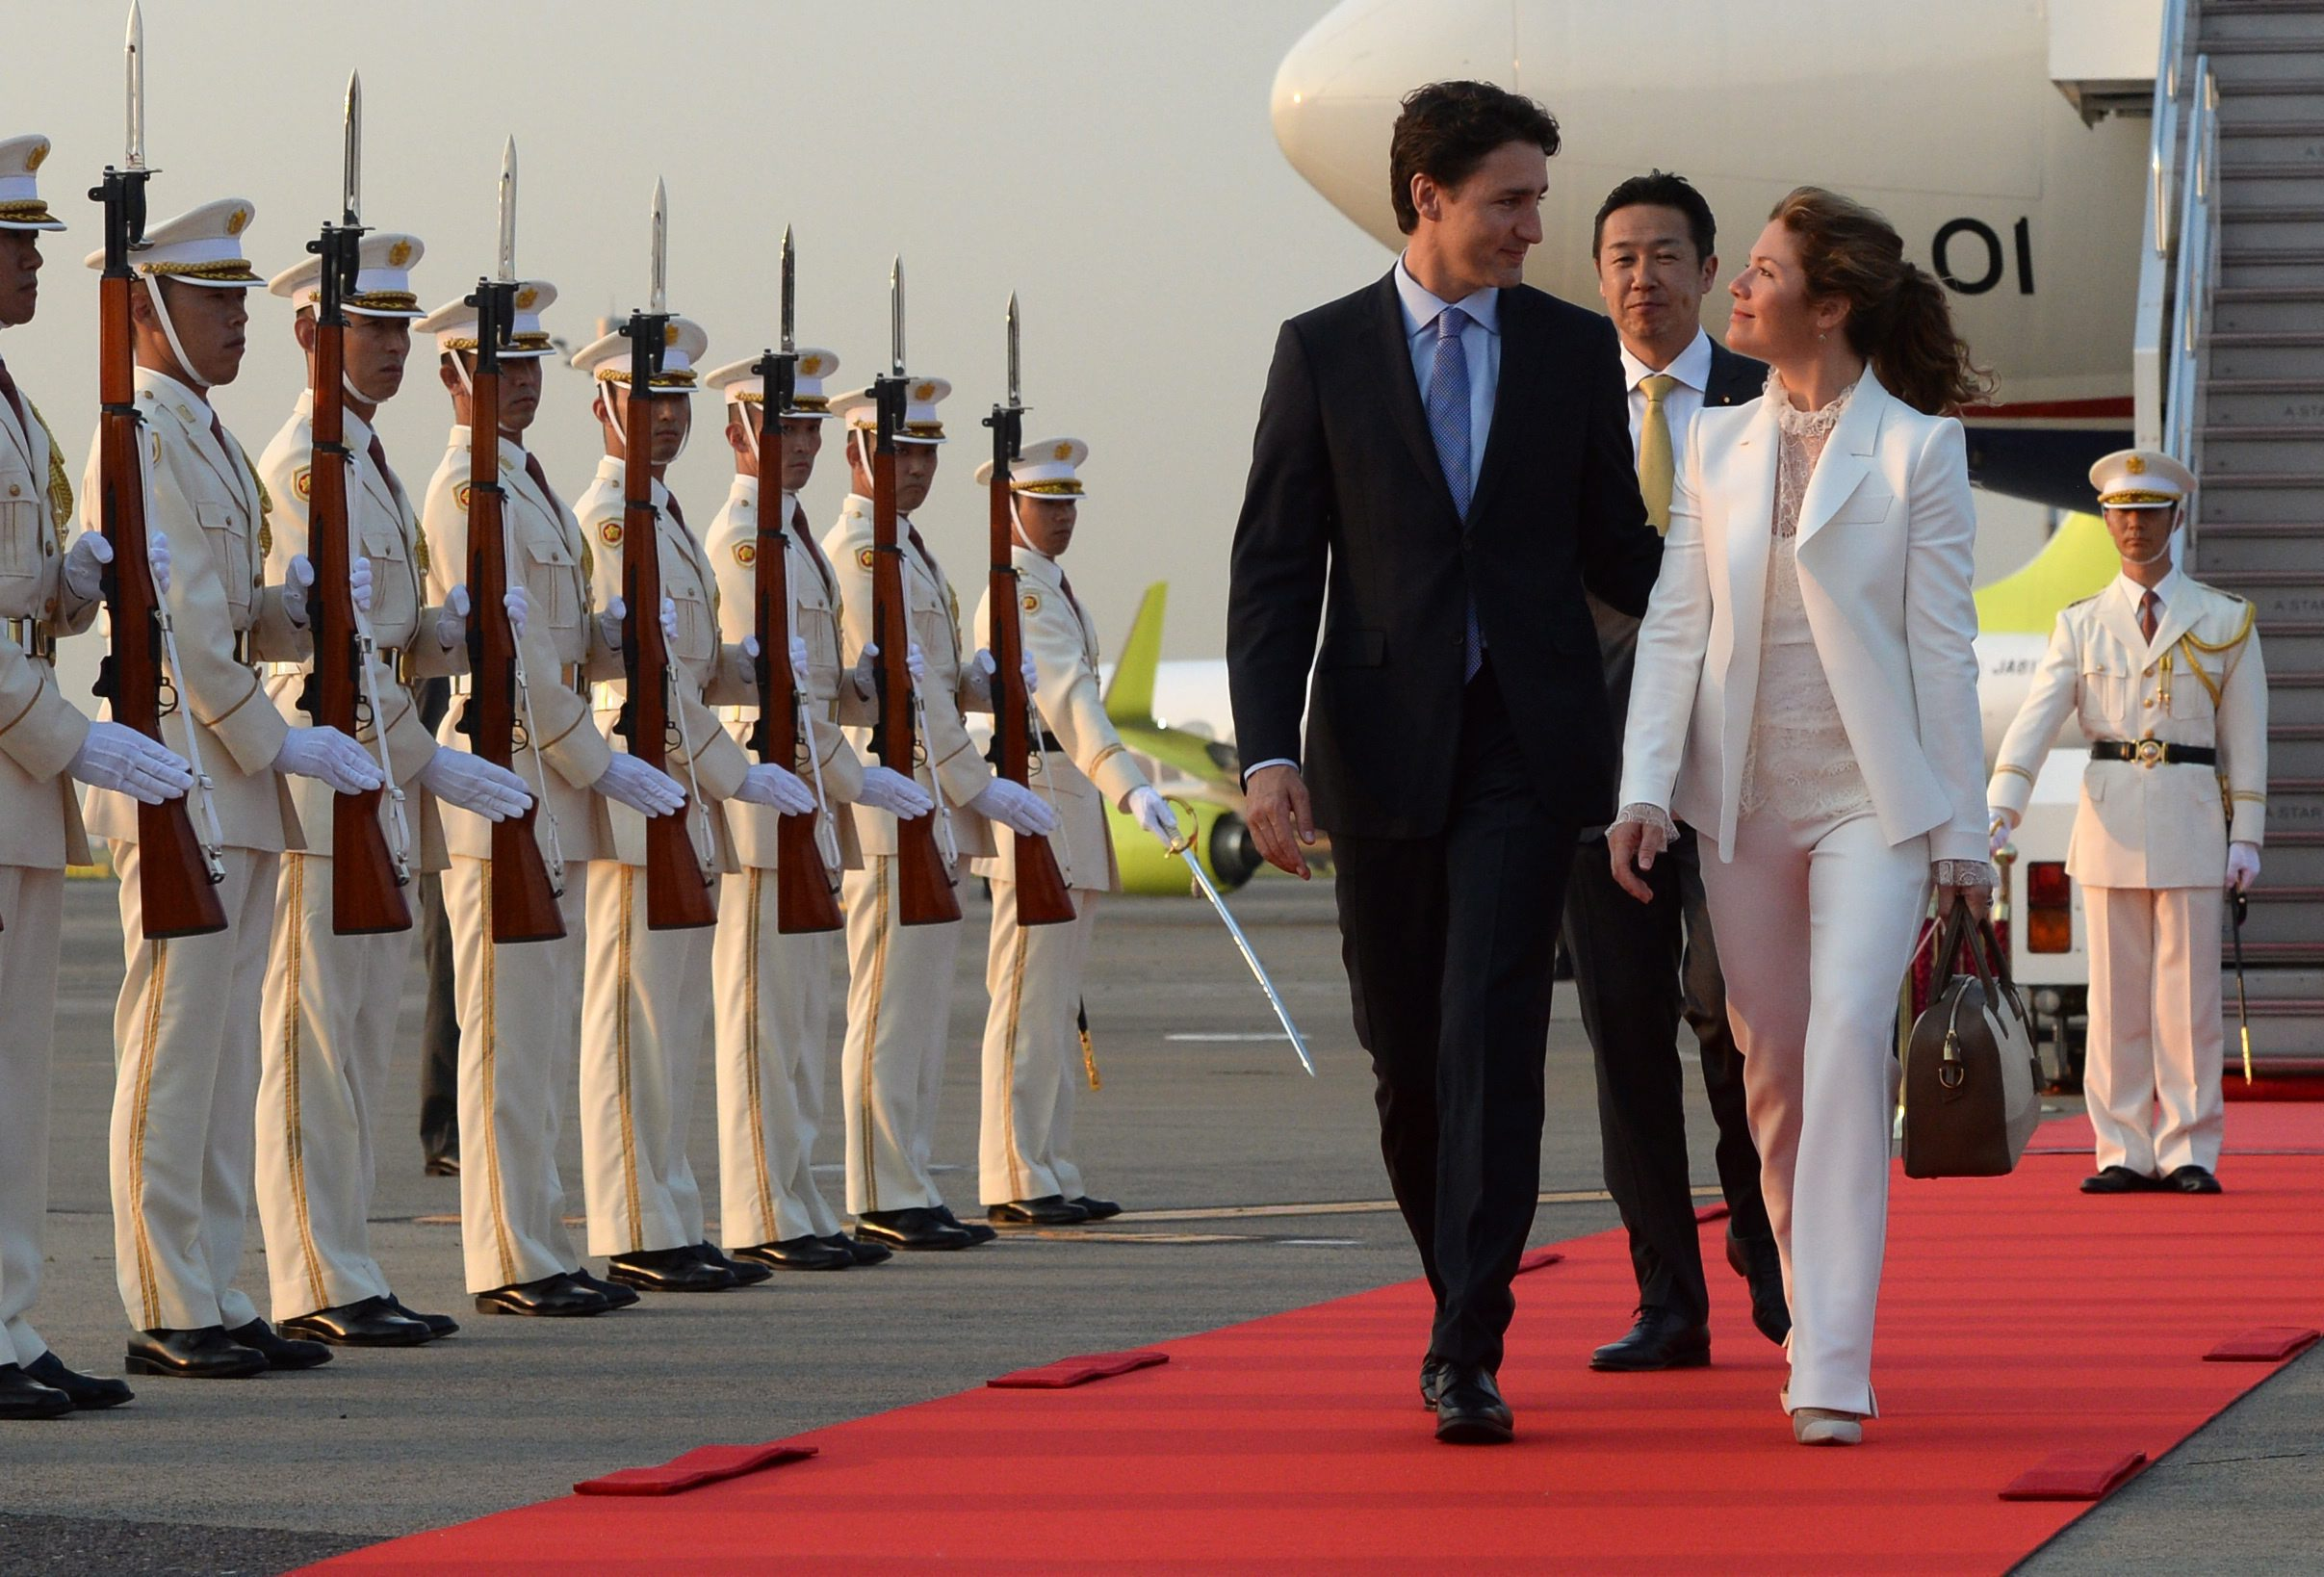 Prime Minister Justin Trudeau and wife Sophie Gregoire-Trudeau are greeted by an honour guard as they arrive in Tokyo, Japan on Monday, May 23, 2016. THE CANADIAN PRESS/Sean Kilpatrick